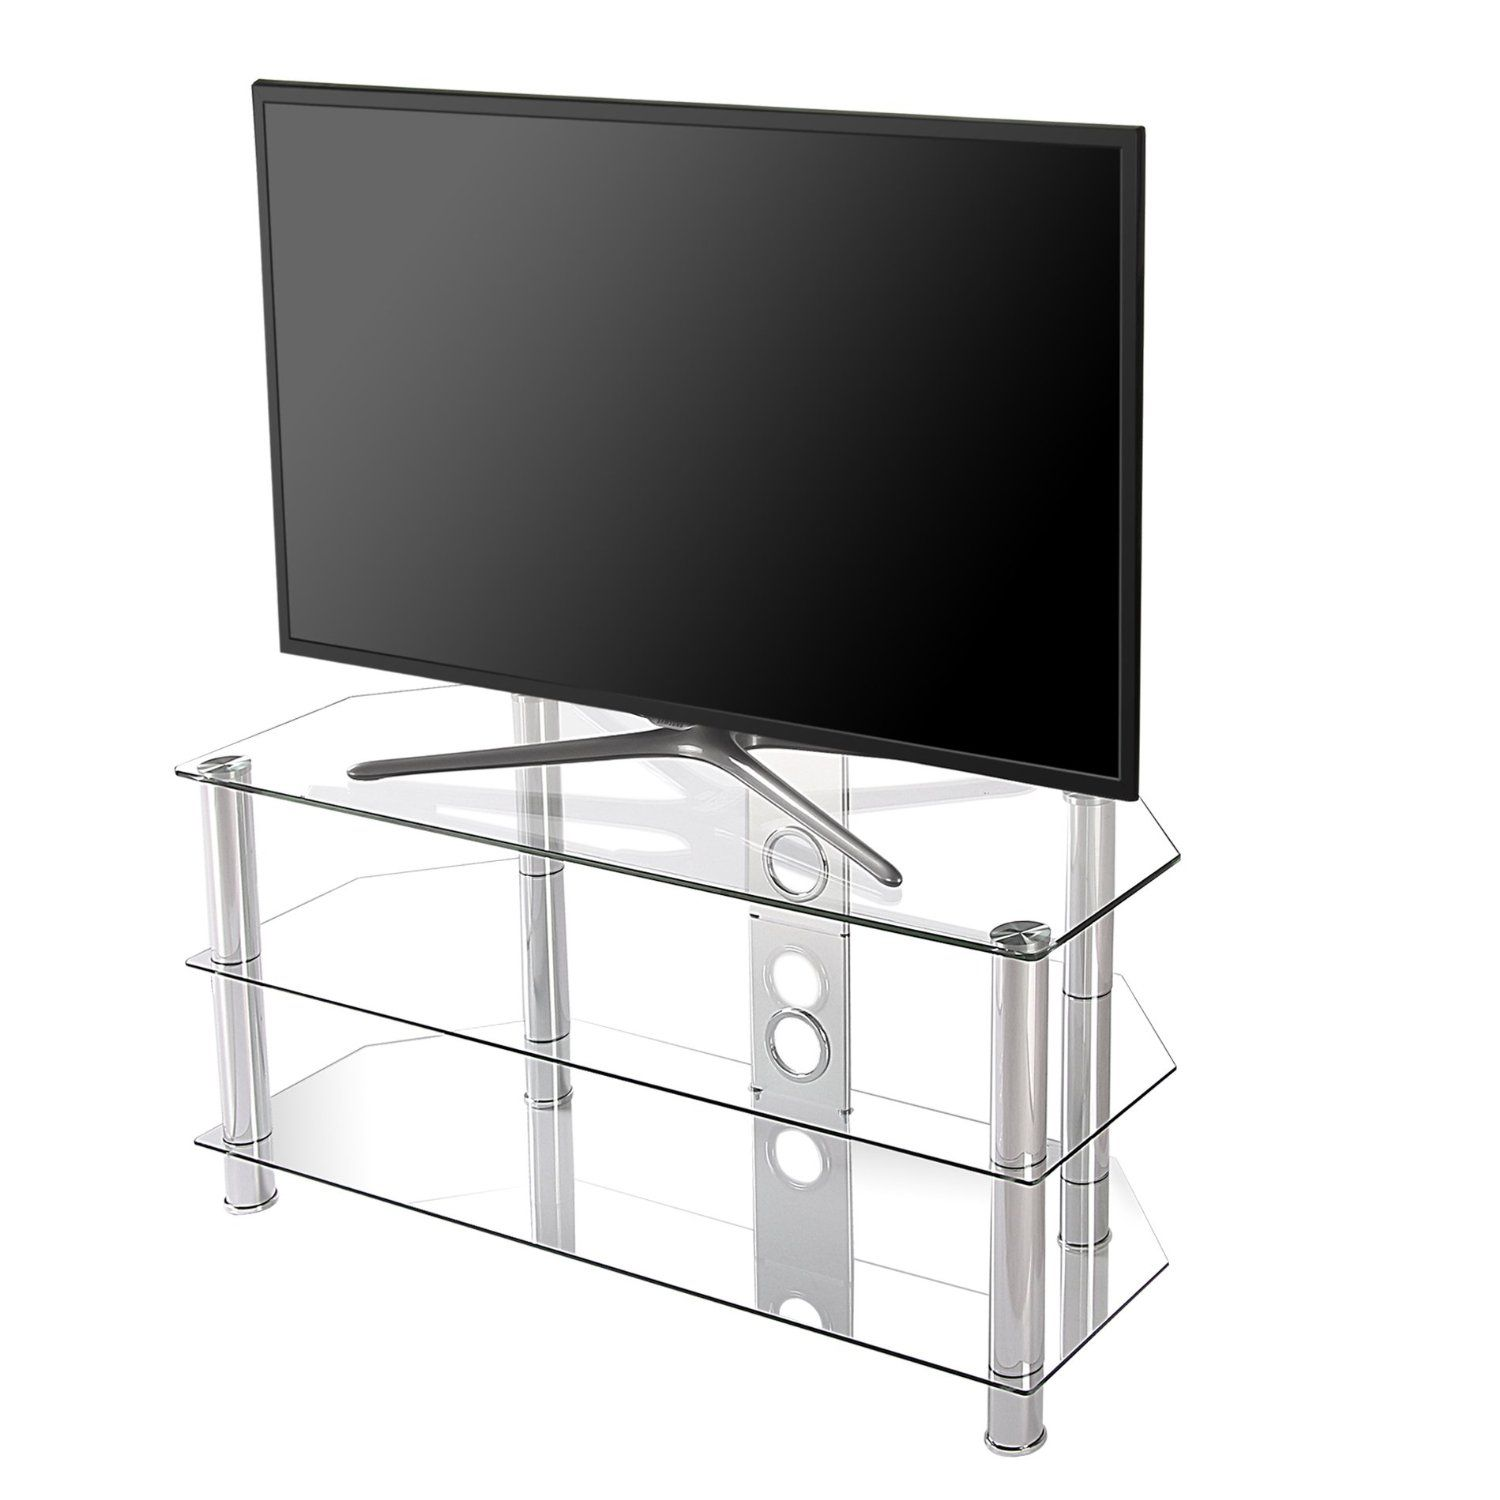 fc41d3acdf49 Amazon.com: Fitueyes Classic Clear Tempered Glass Tv Stand Suit for up to 46